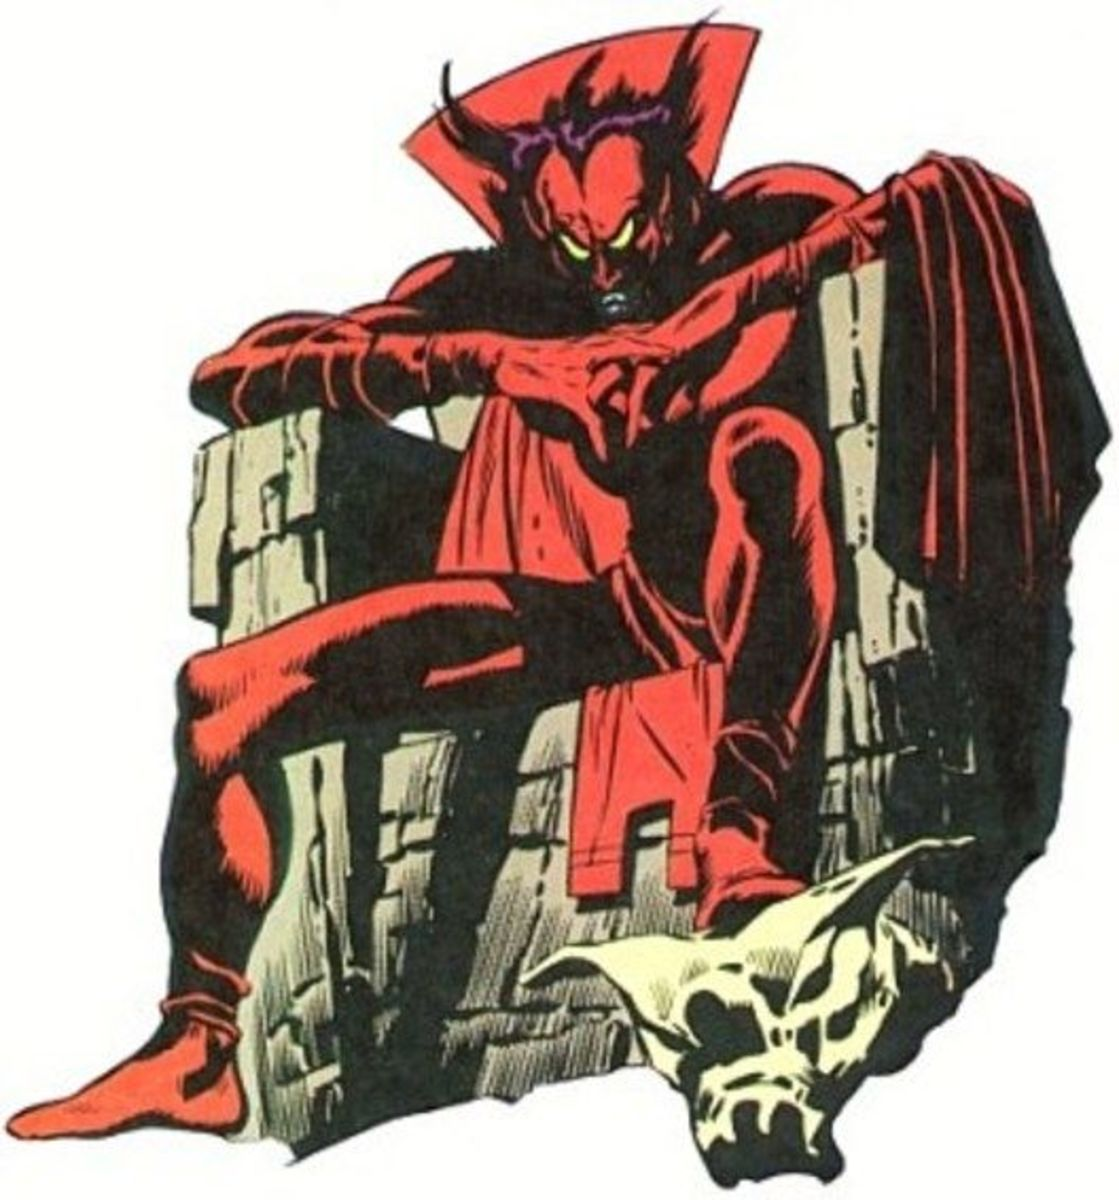 Mephisto, Ruler of Hell